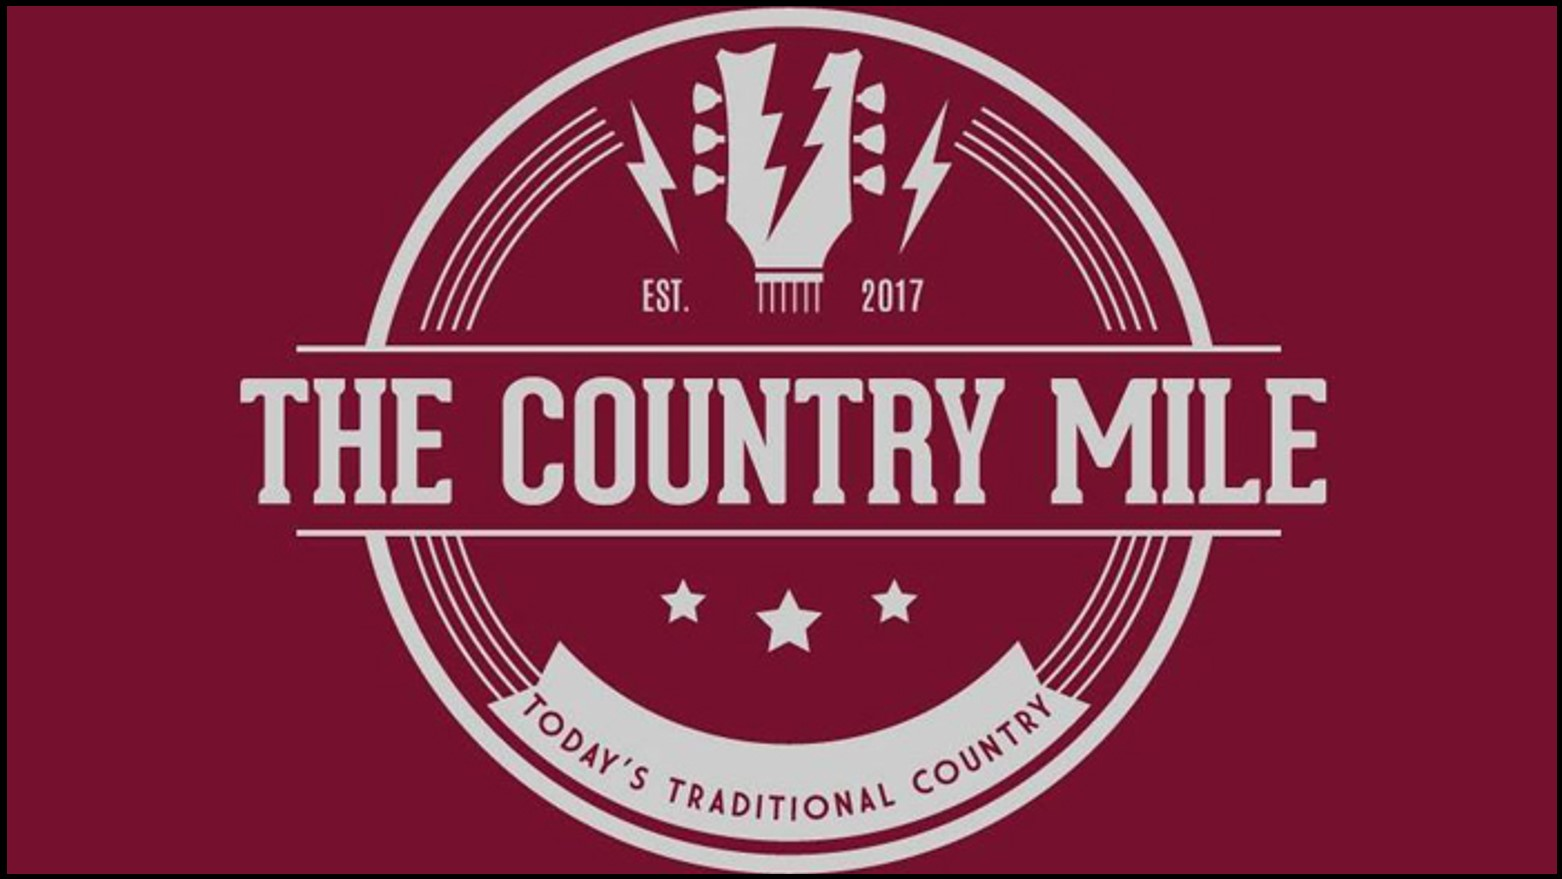 The Country Mile: Sunday 2pm – 3pm